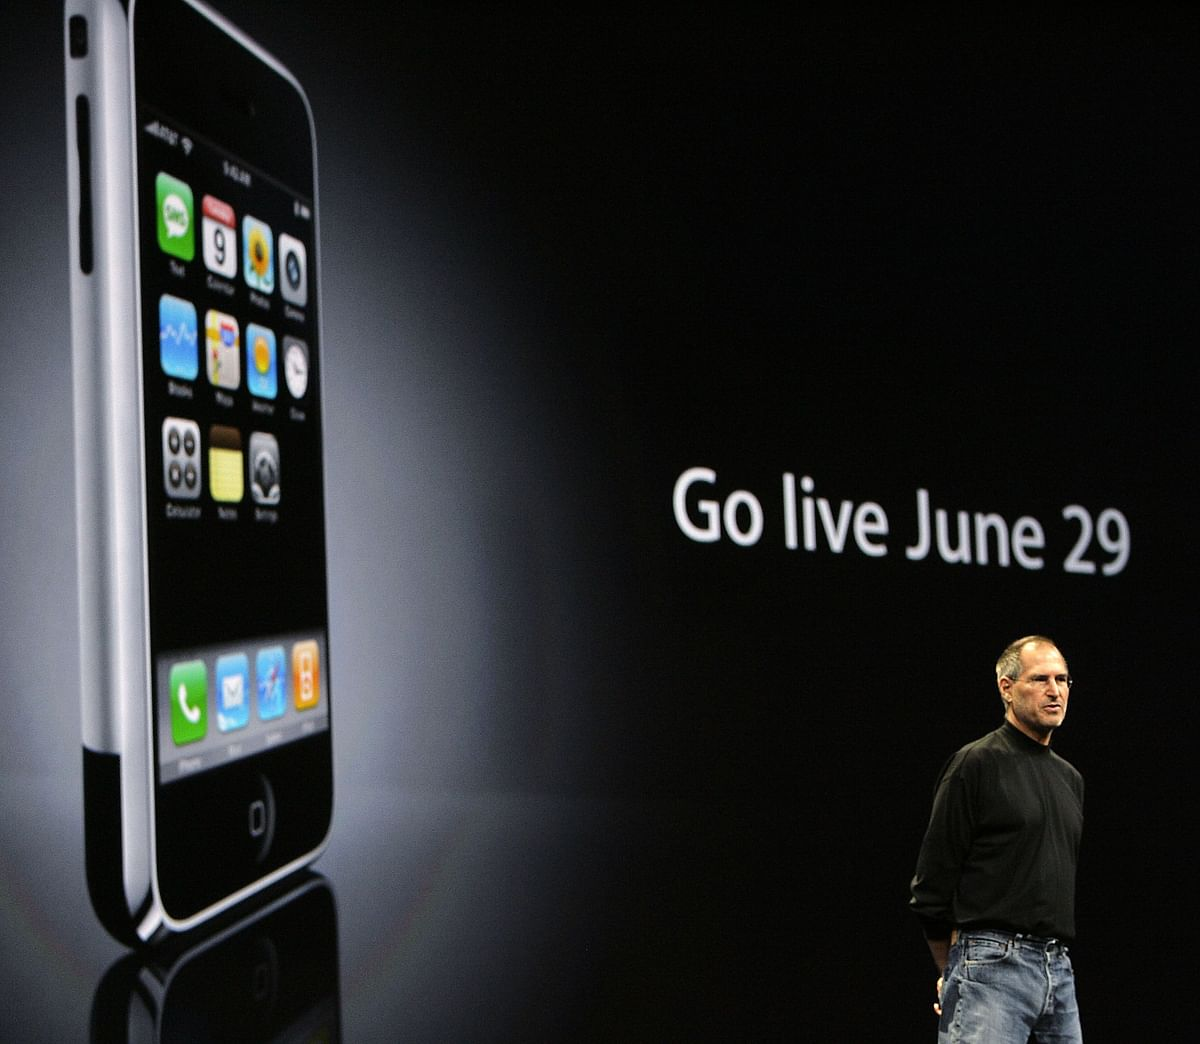 Steve Jobs speaks in front of a projection of the first iPhone ahead of its launch, in San Francisco, California, on June 11, 2007. (Photographer: Tony Avelar/Bloomberg News)